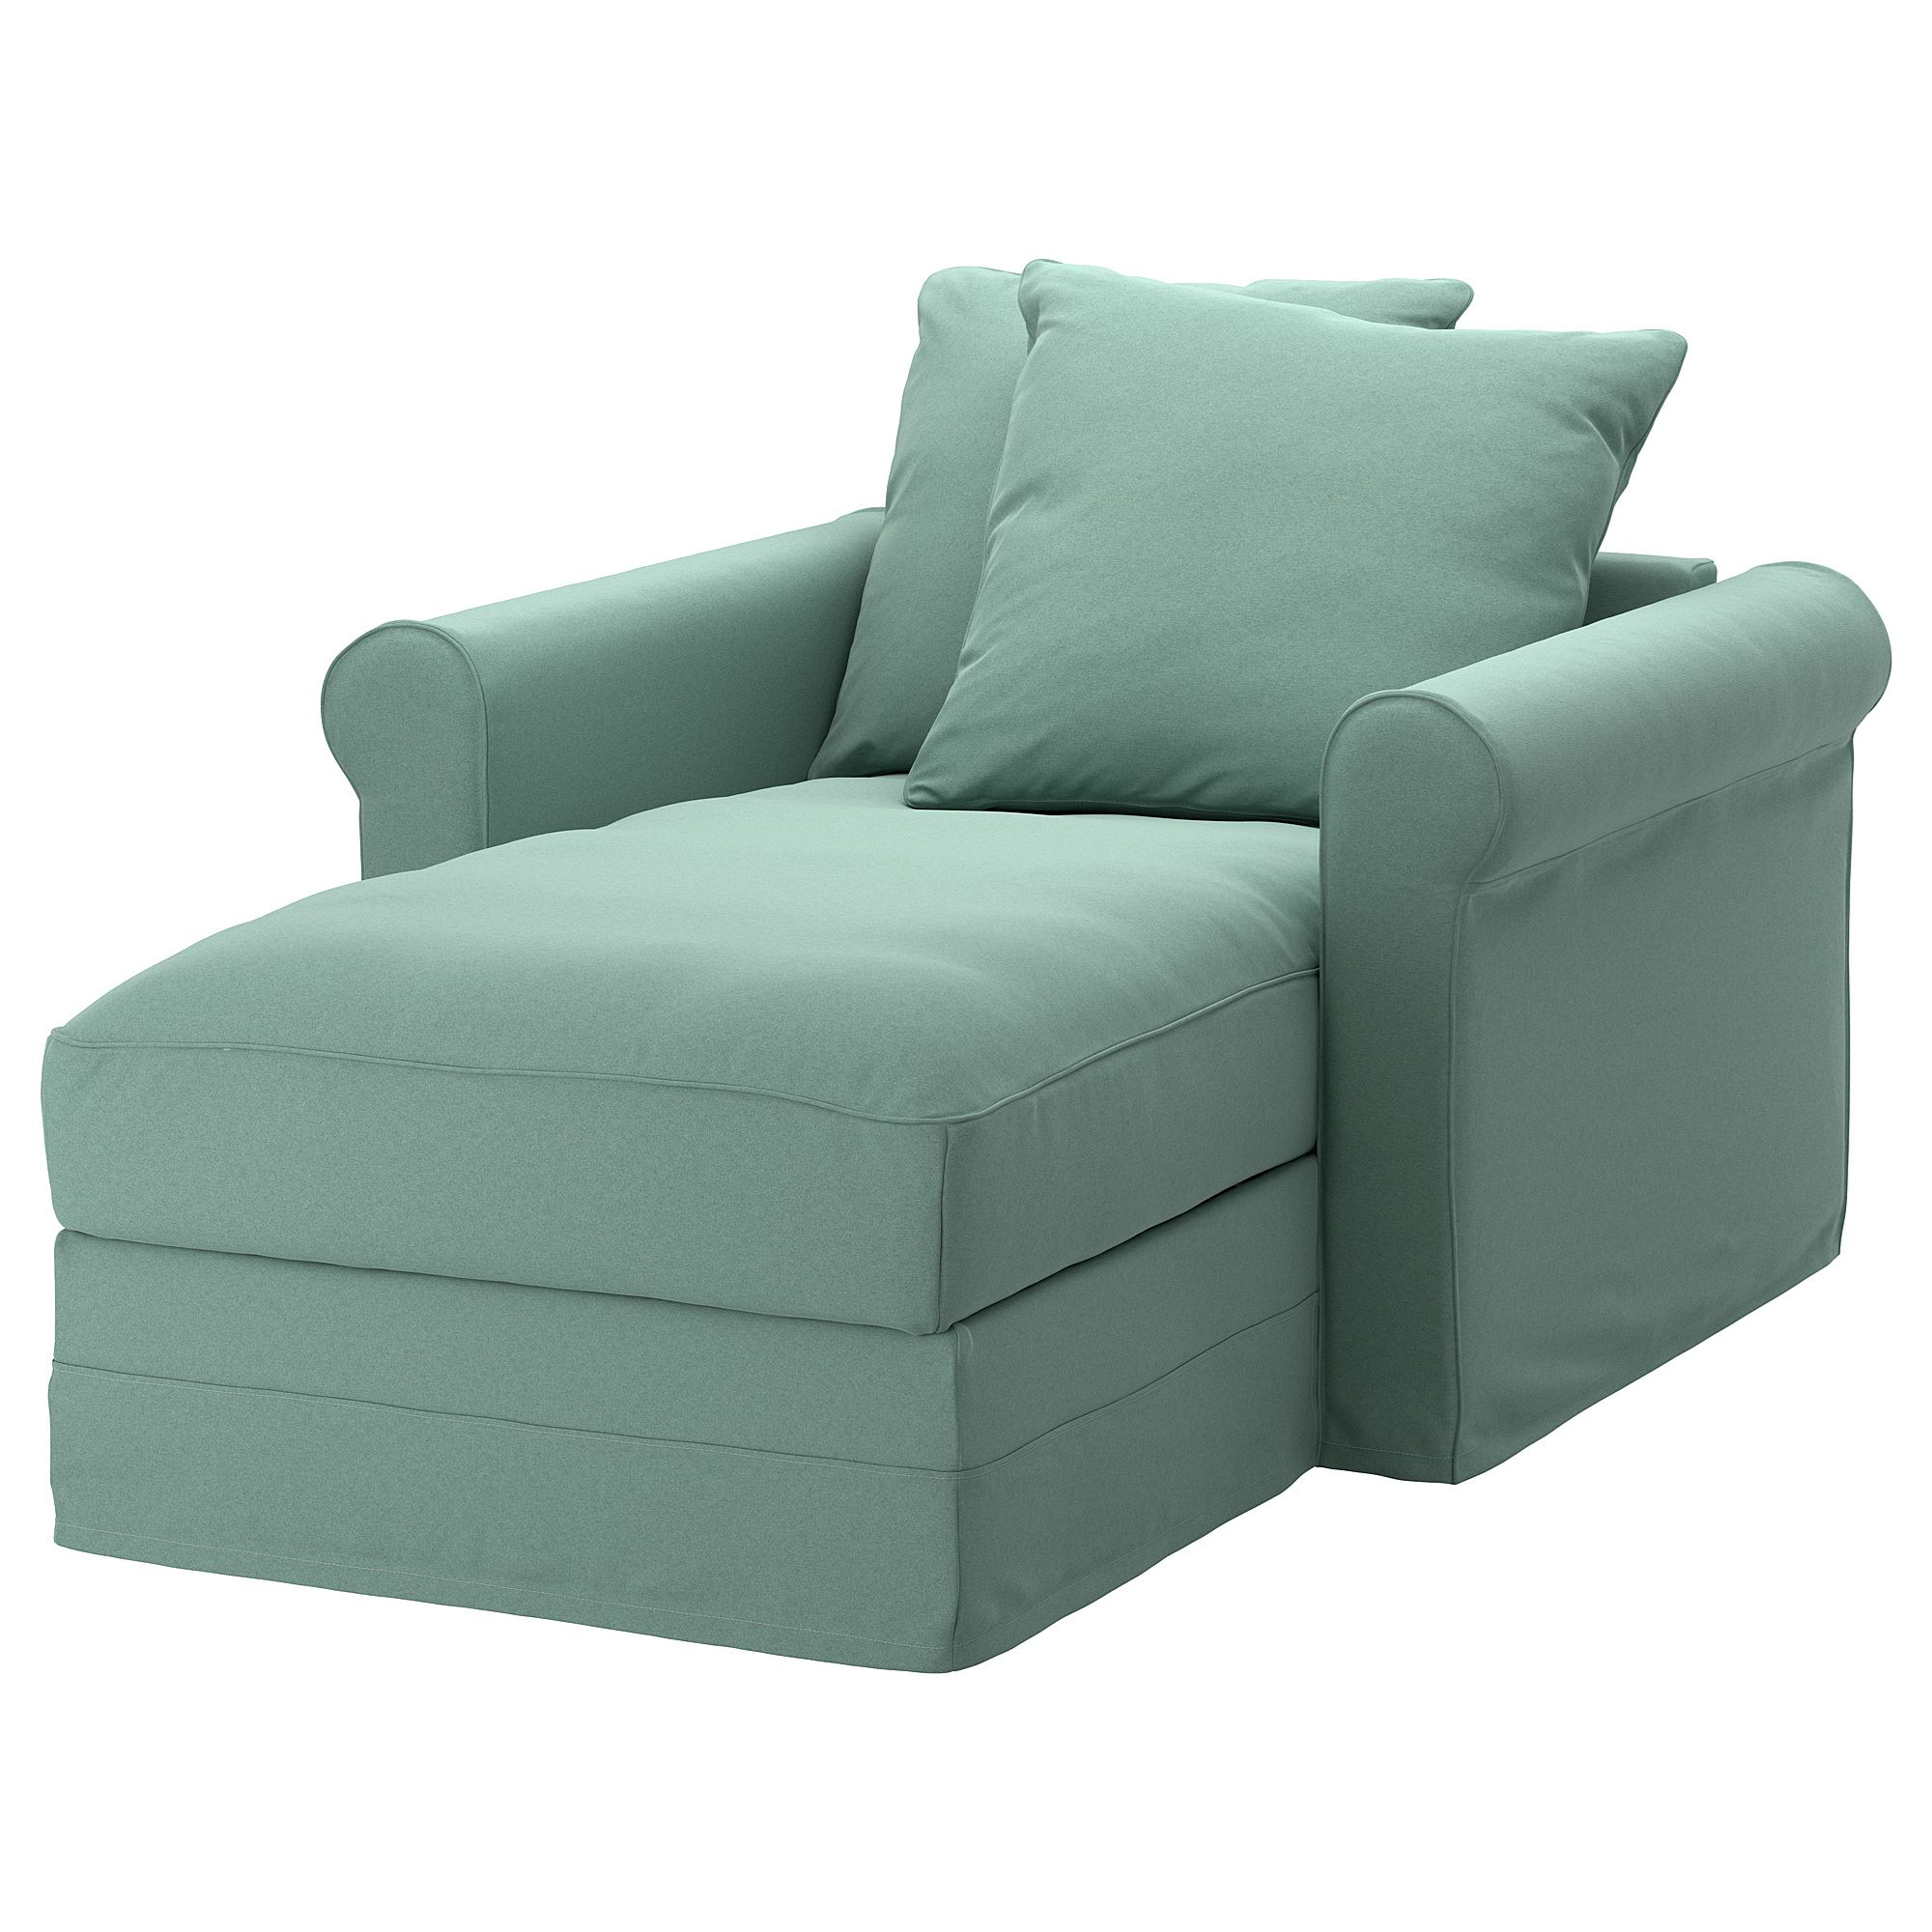 aluminum premium outdoor lounges furniture cast patio lounge darlee store the sedona category chaise green